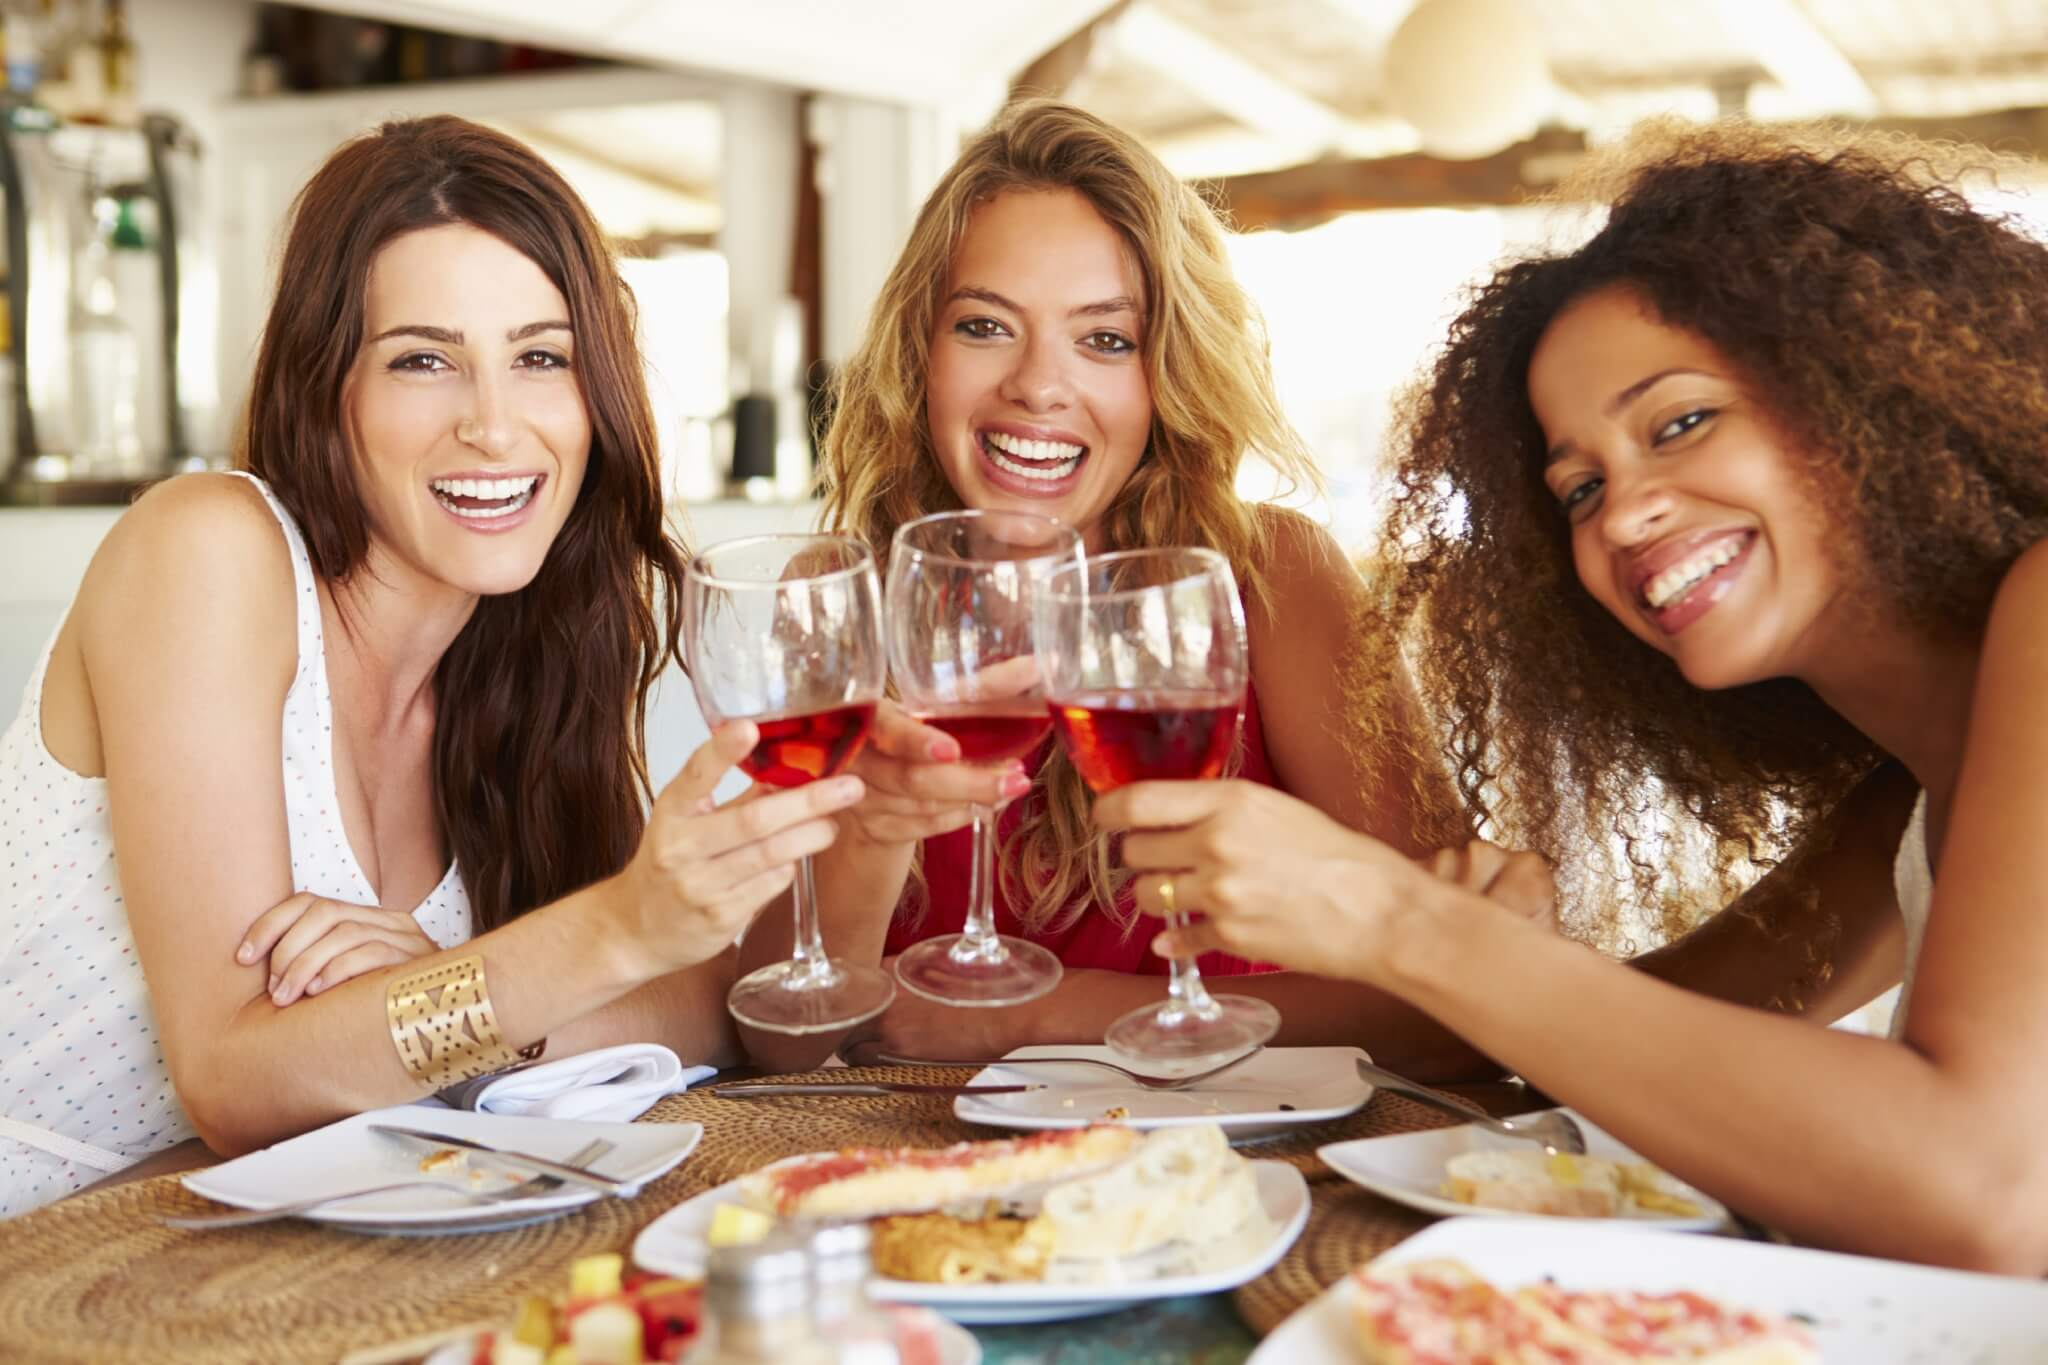 Group-Of-Female-Friends-Enjoying-Meal-In-Outdoor-Restaurant-000049767328_Large-1.jpg.jpeg